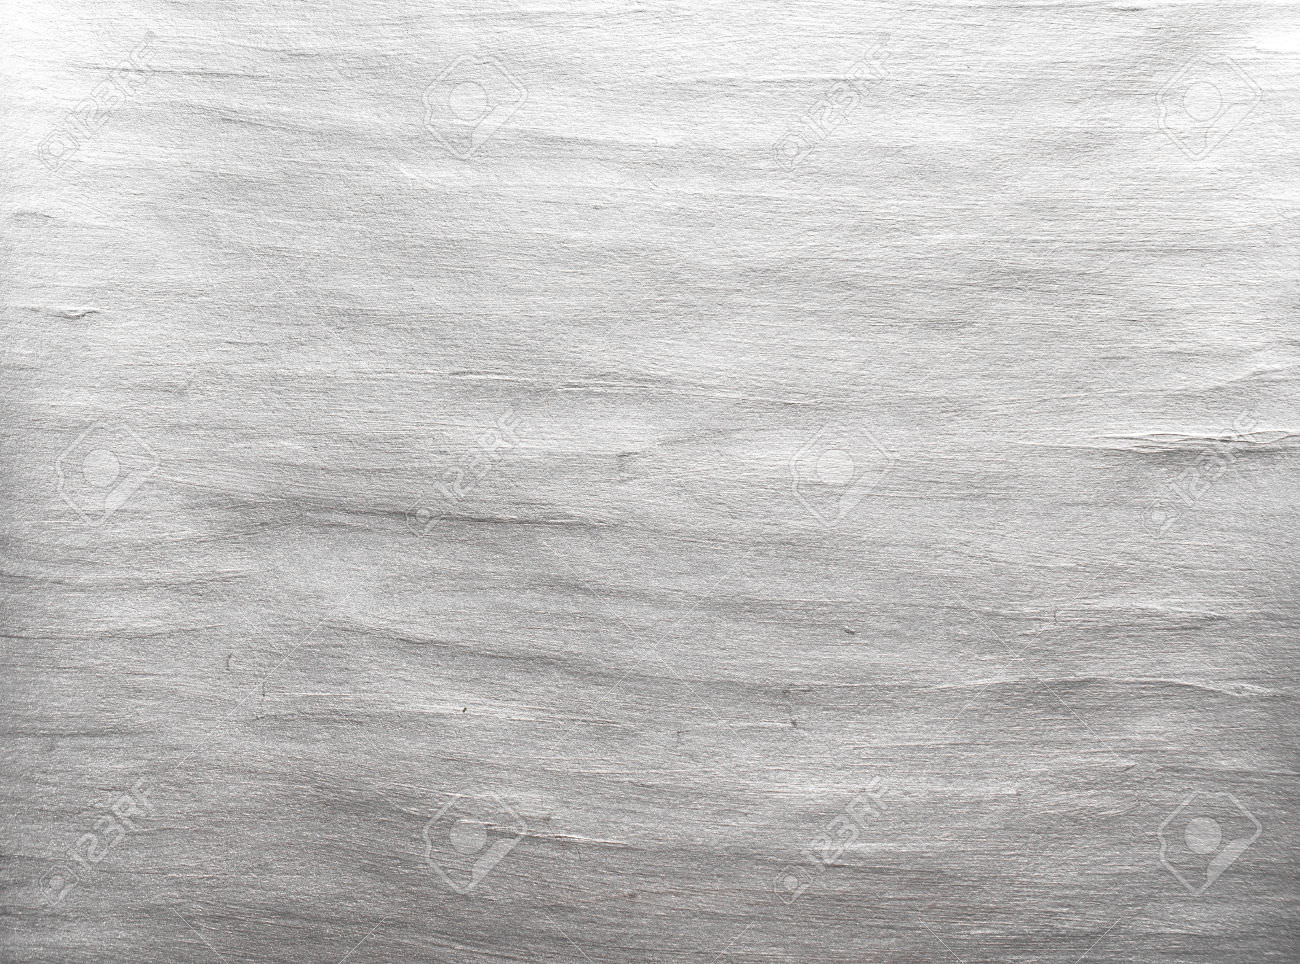 silver water color texture